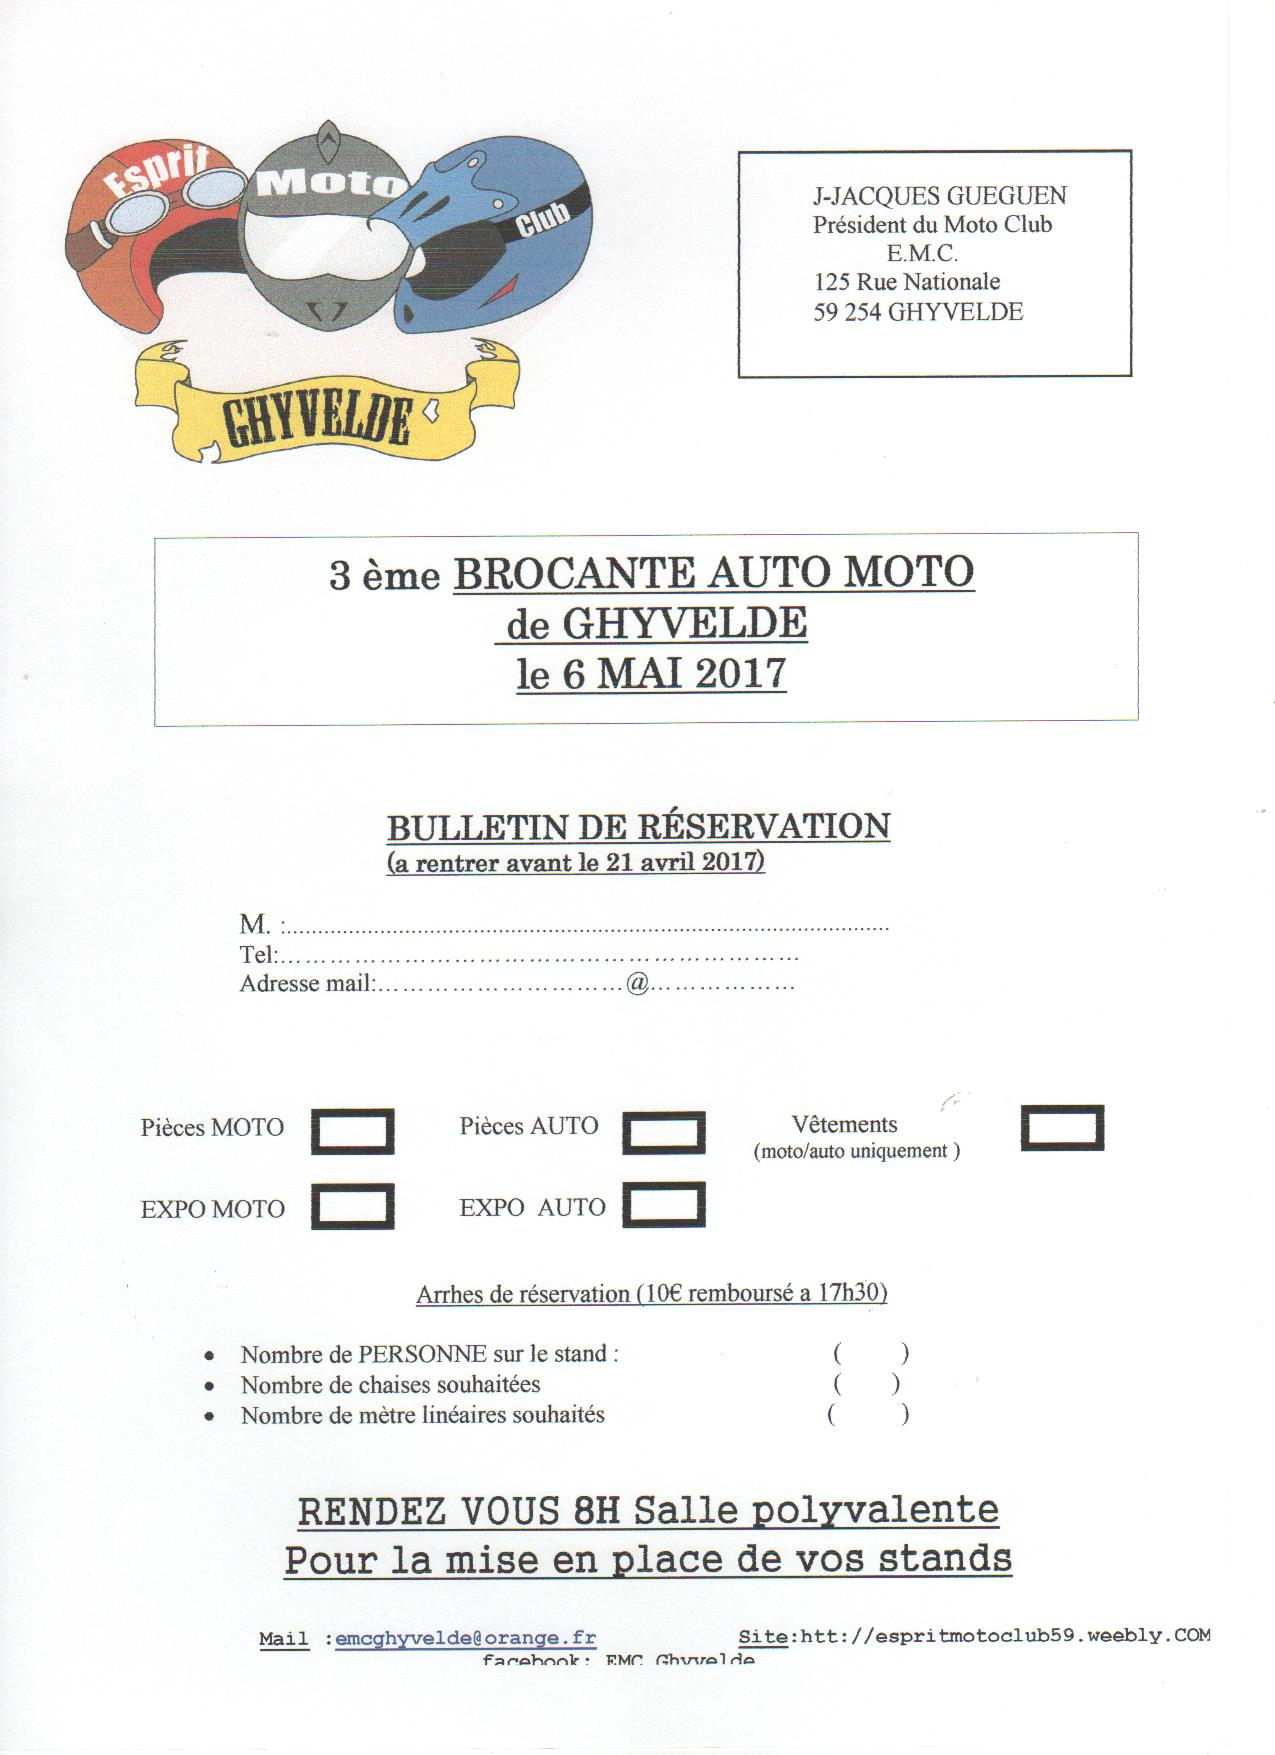 Bulletin d'inscription broc 2017 vielle moto 001.jpg